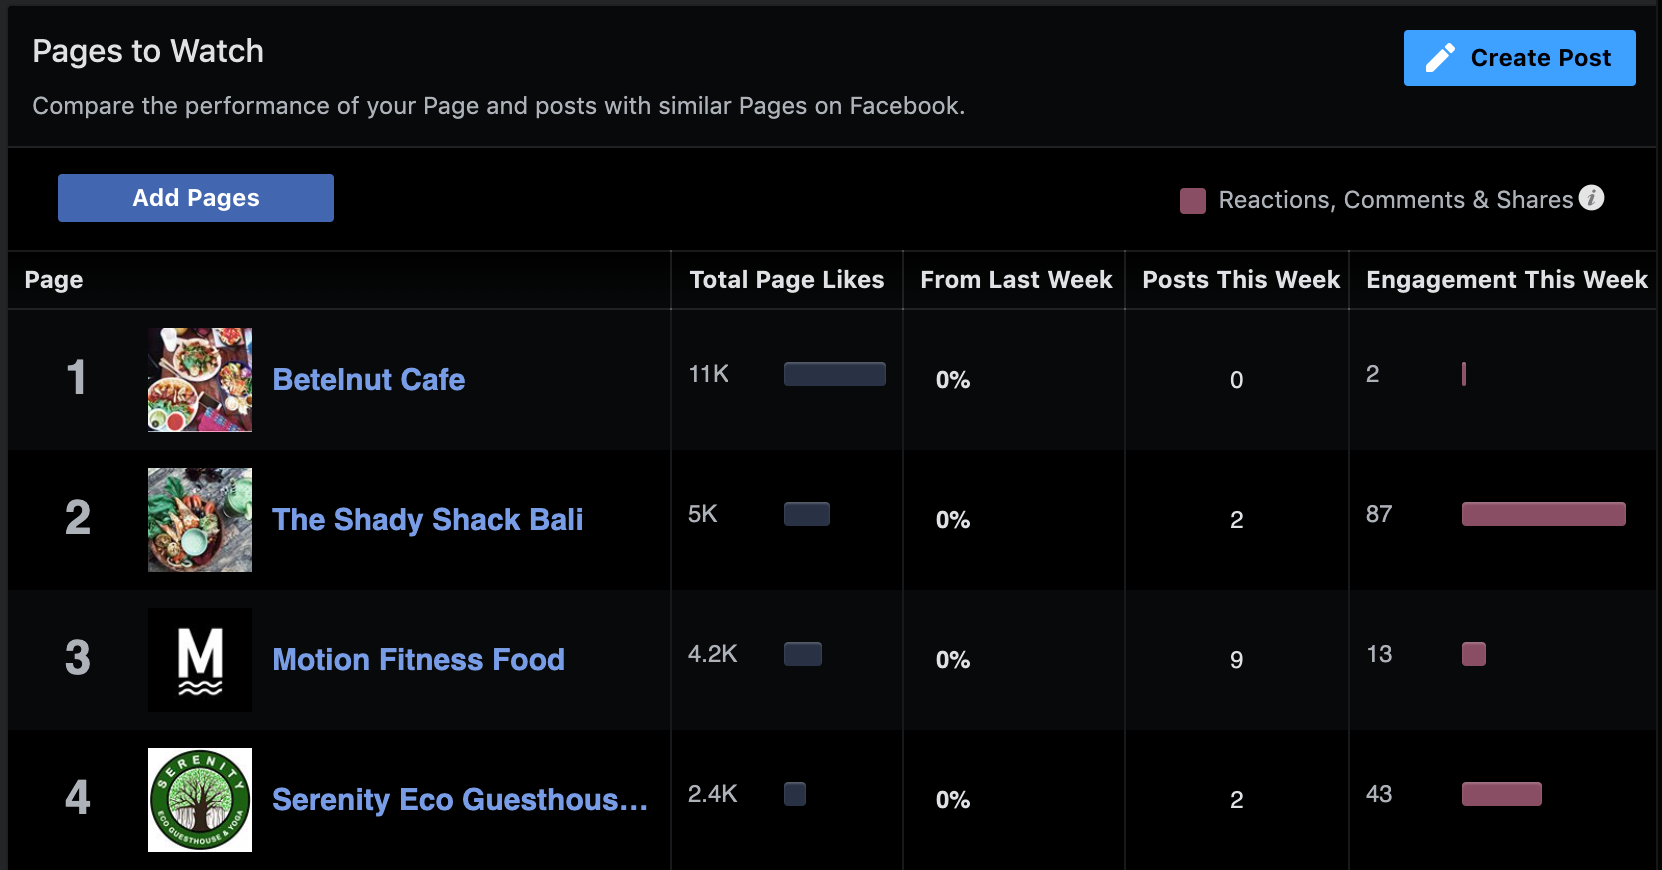 Example of Facebook's Pages to Watch feature in use.